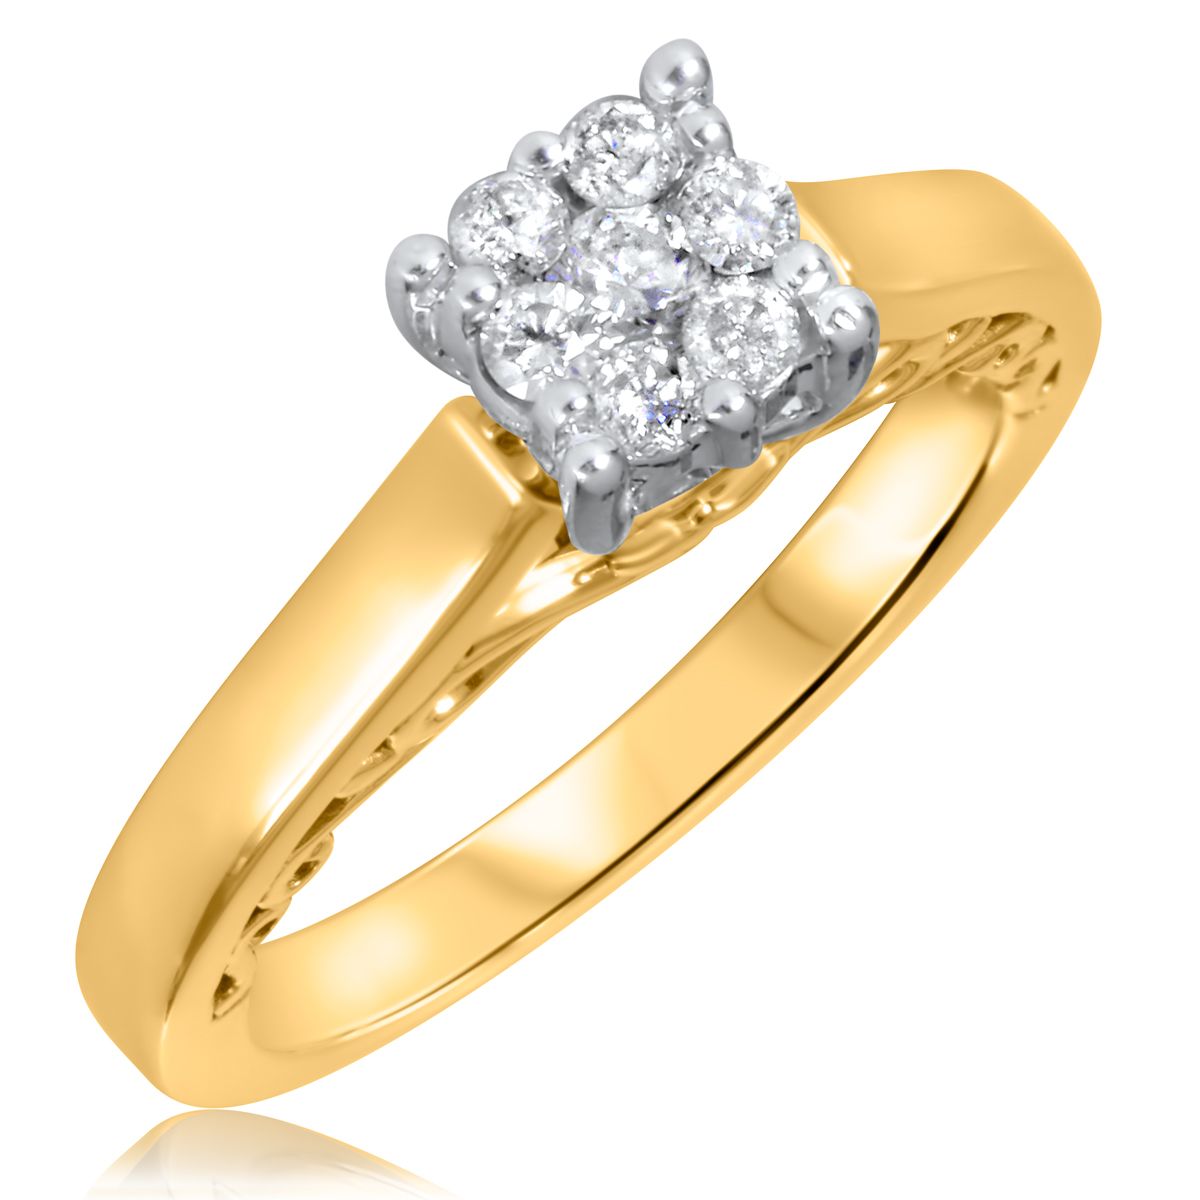 1/5 CT. T.W. Diamond Ladies Engagement Ring 10K Yellow Gold- Size 8